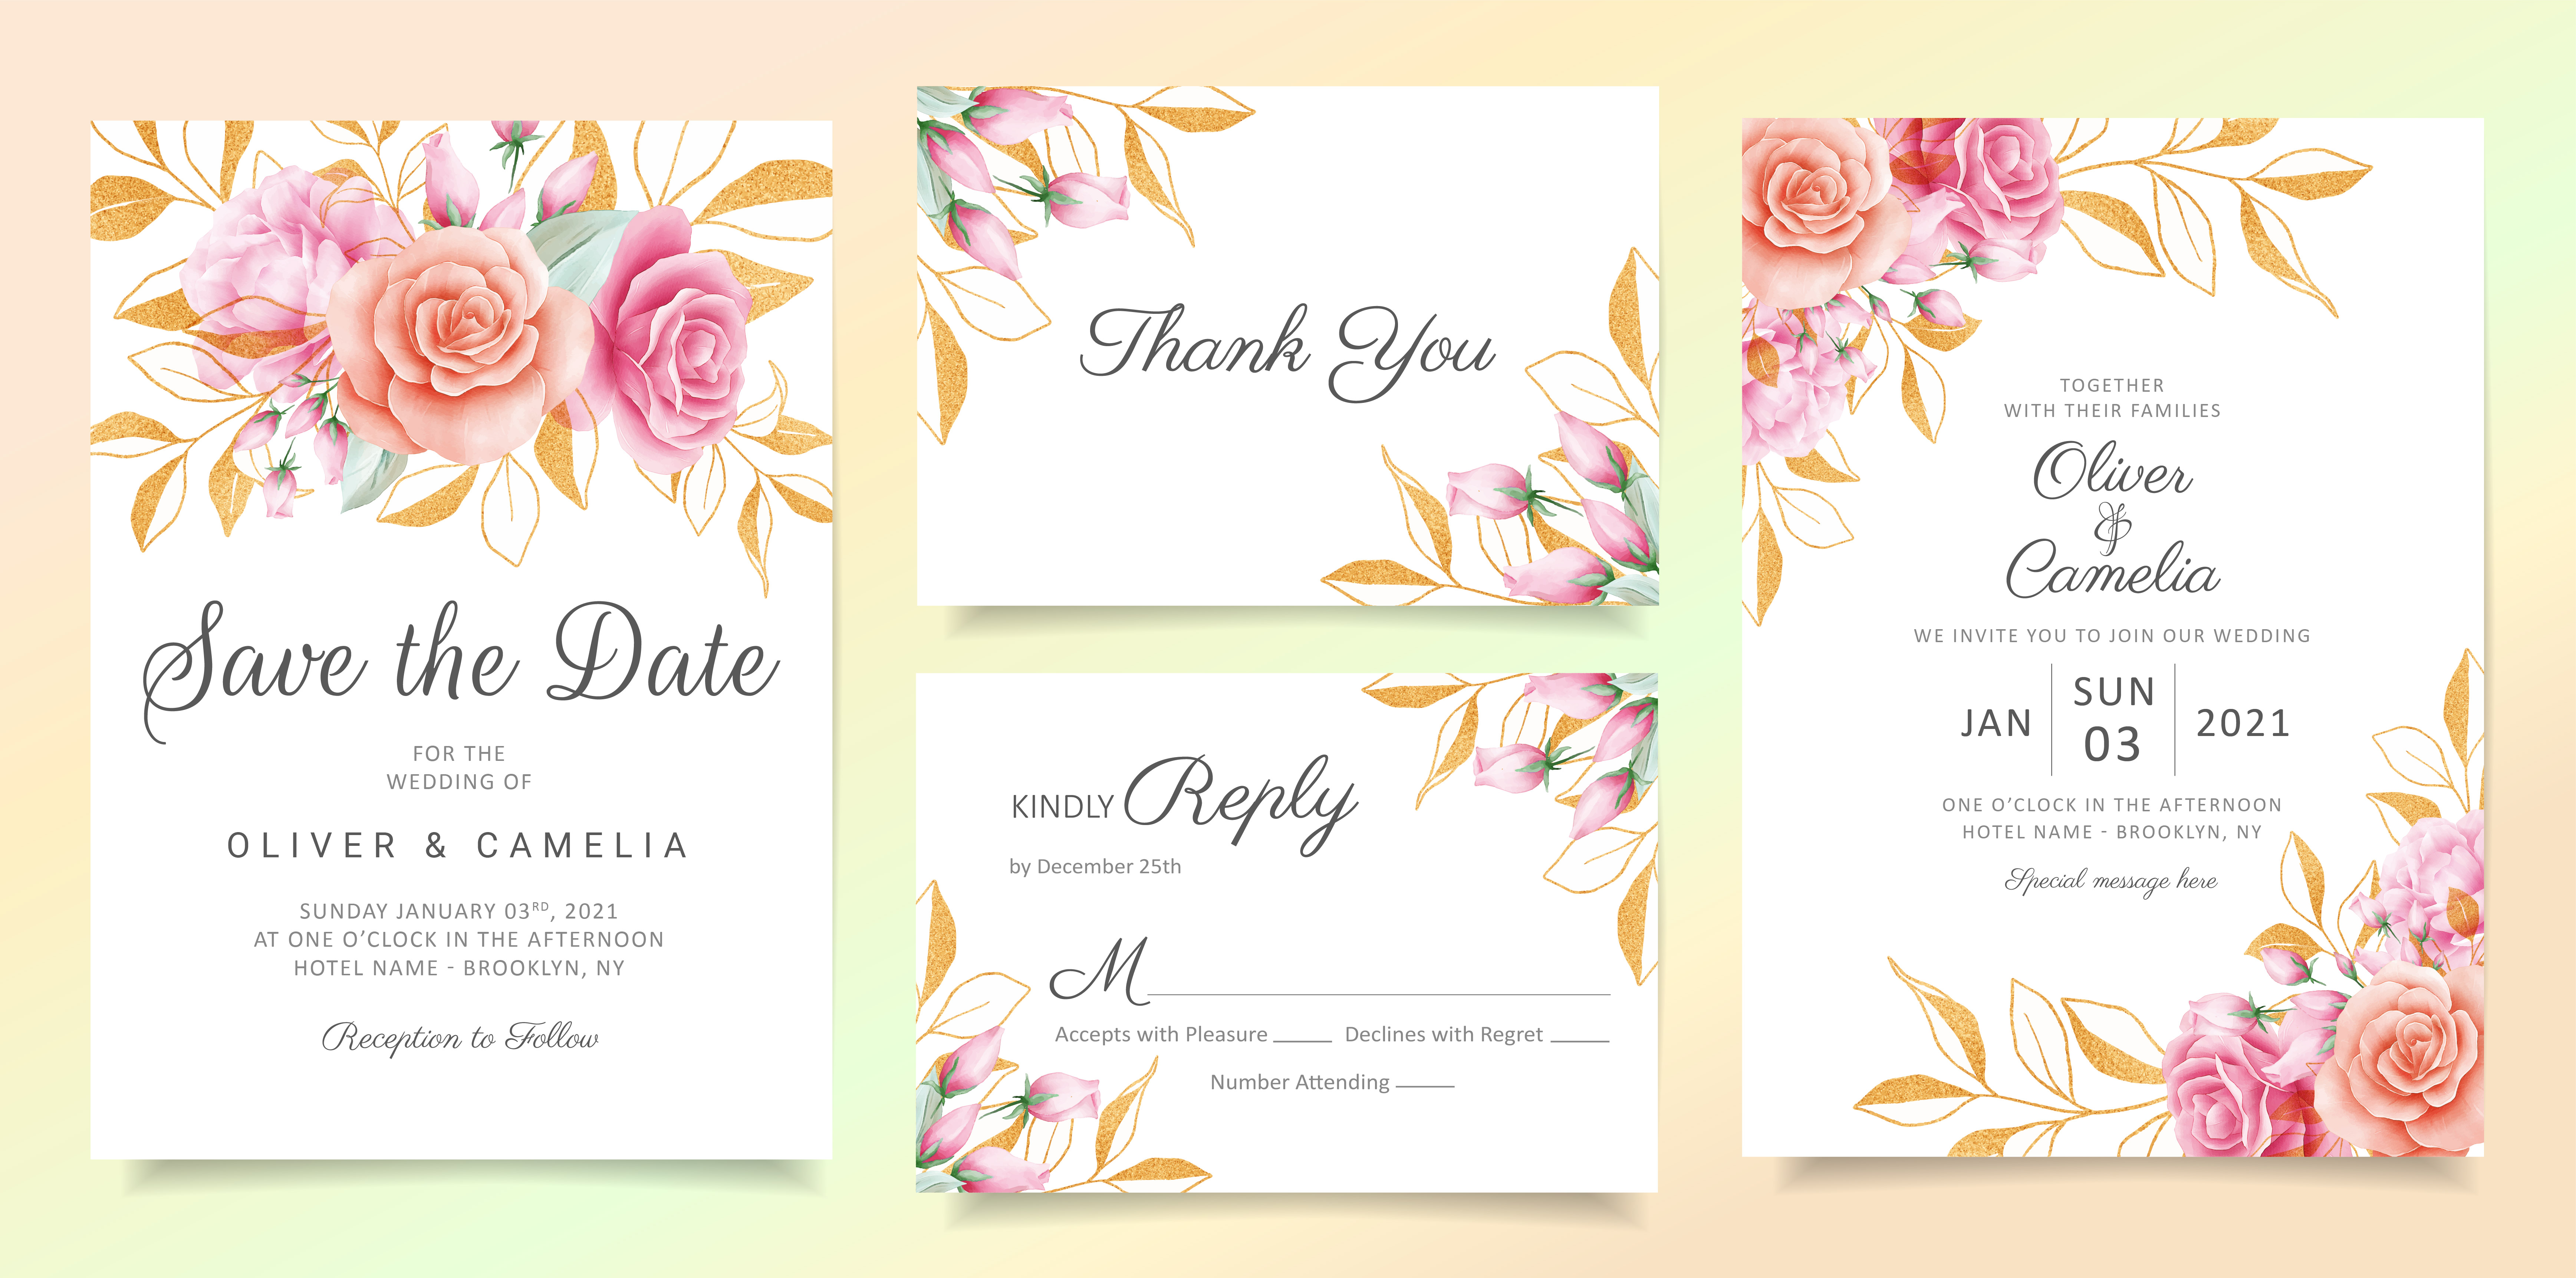 flowers with glitter leaves wedding invitation card